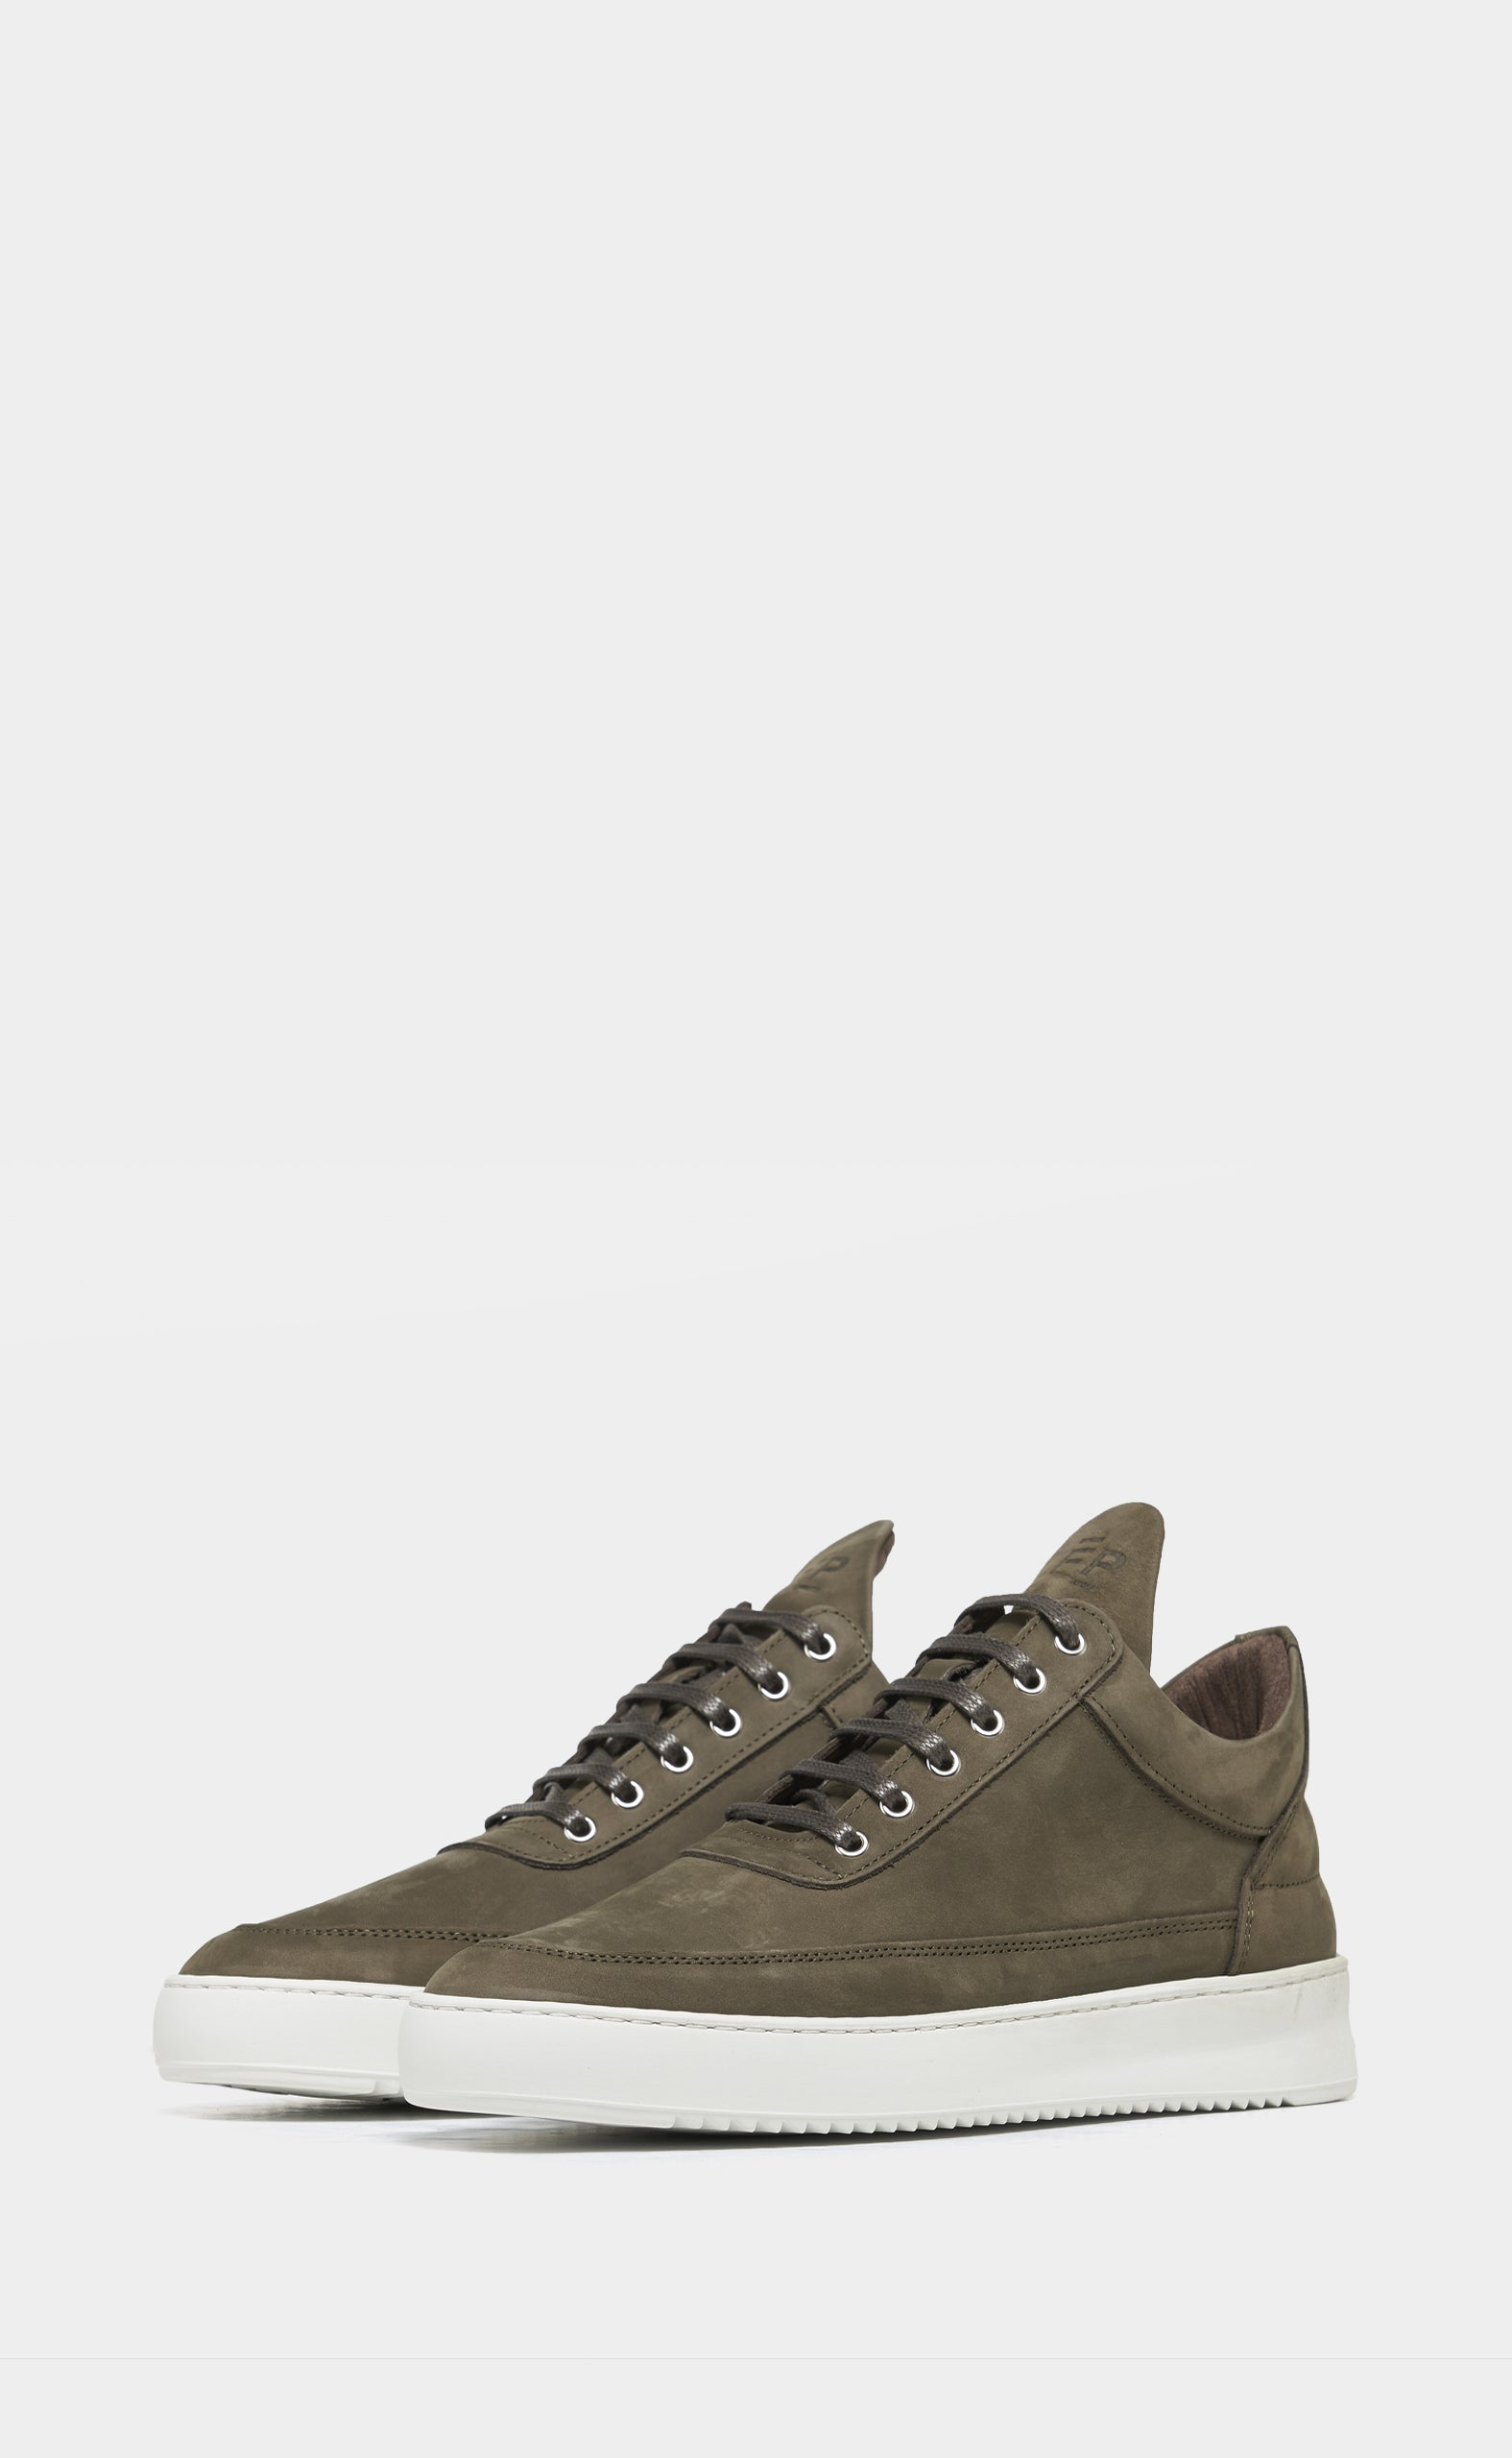 Low Top Ripple Nubuck Dark Green - women